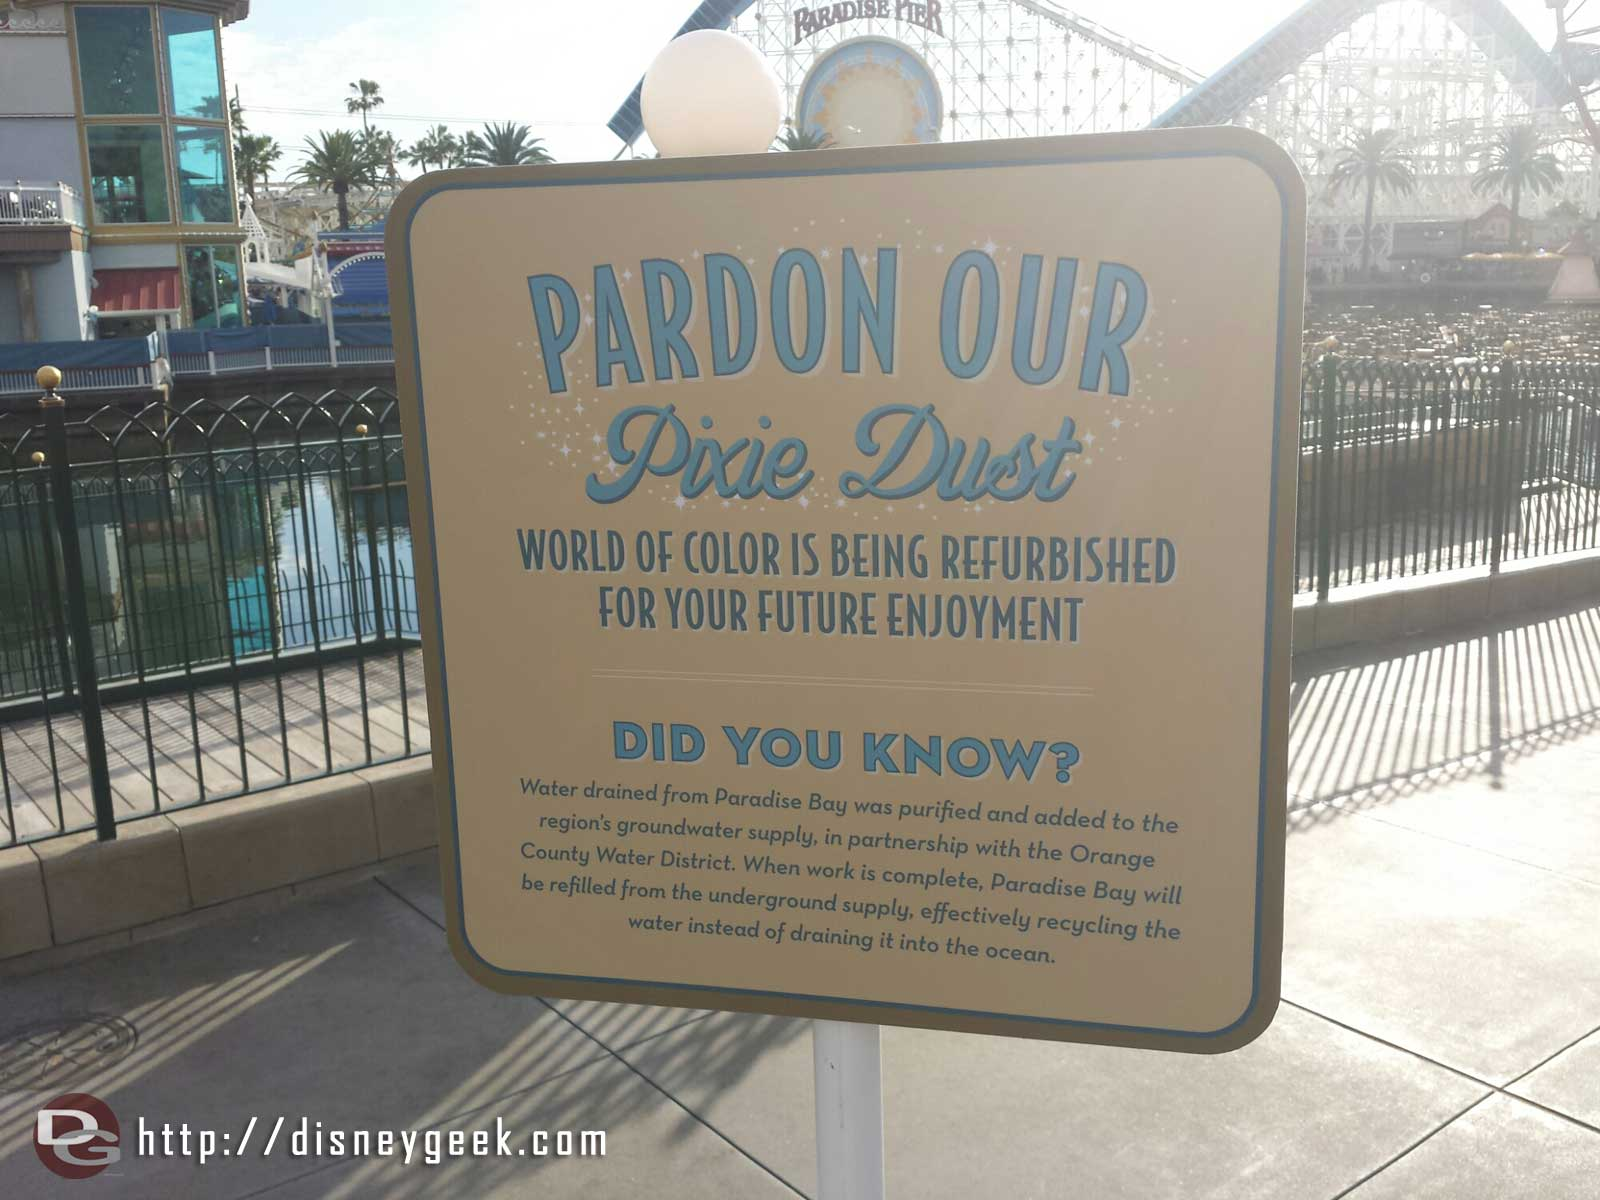 A sign explaining that the water in Paradise Bay will be drained and recycled